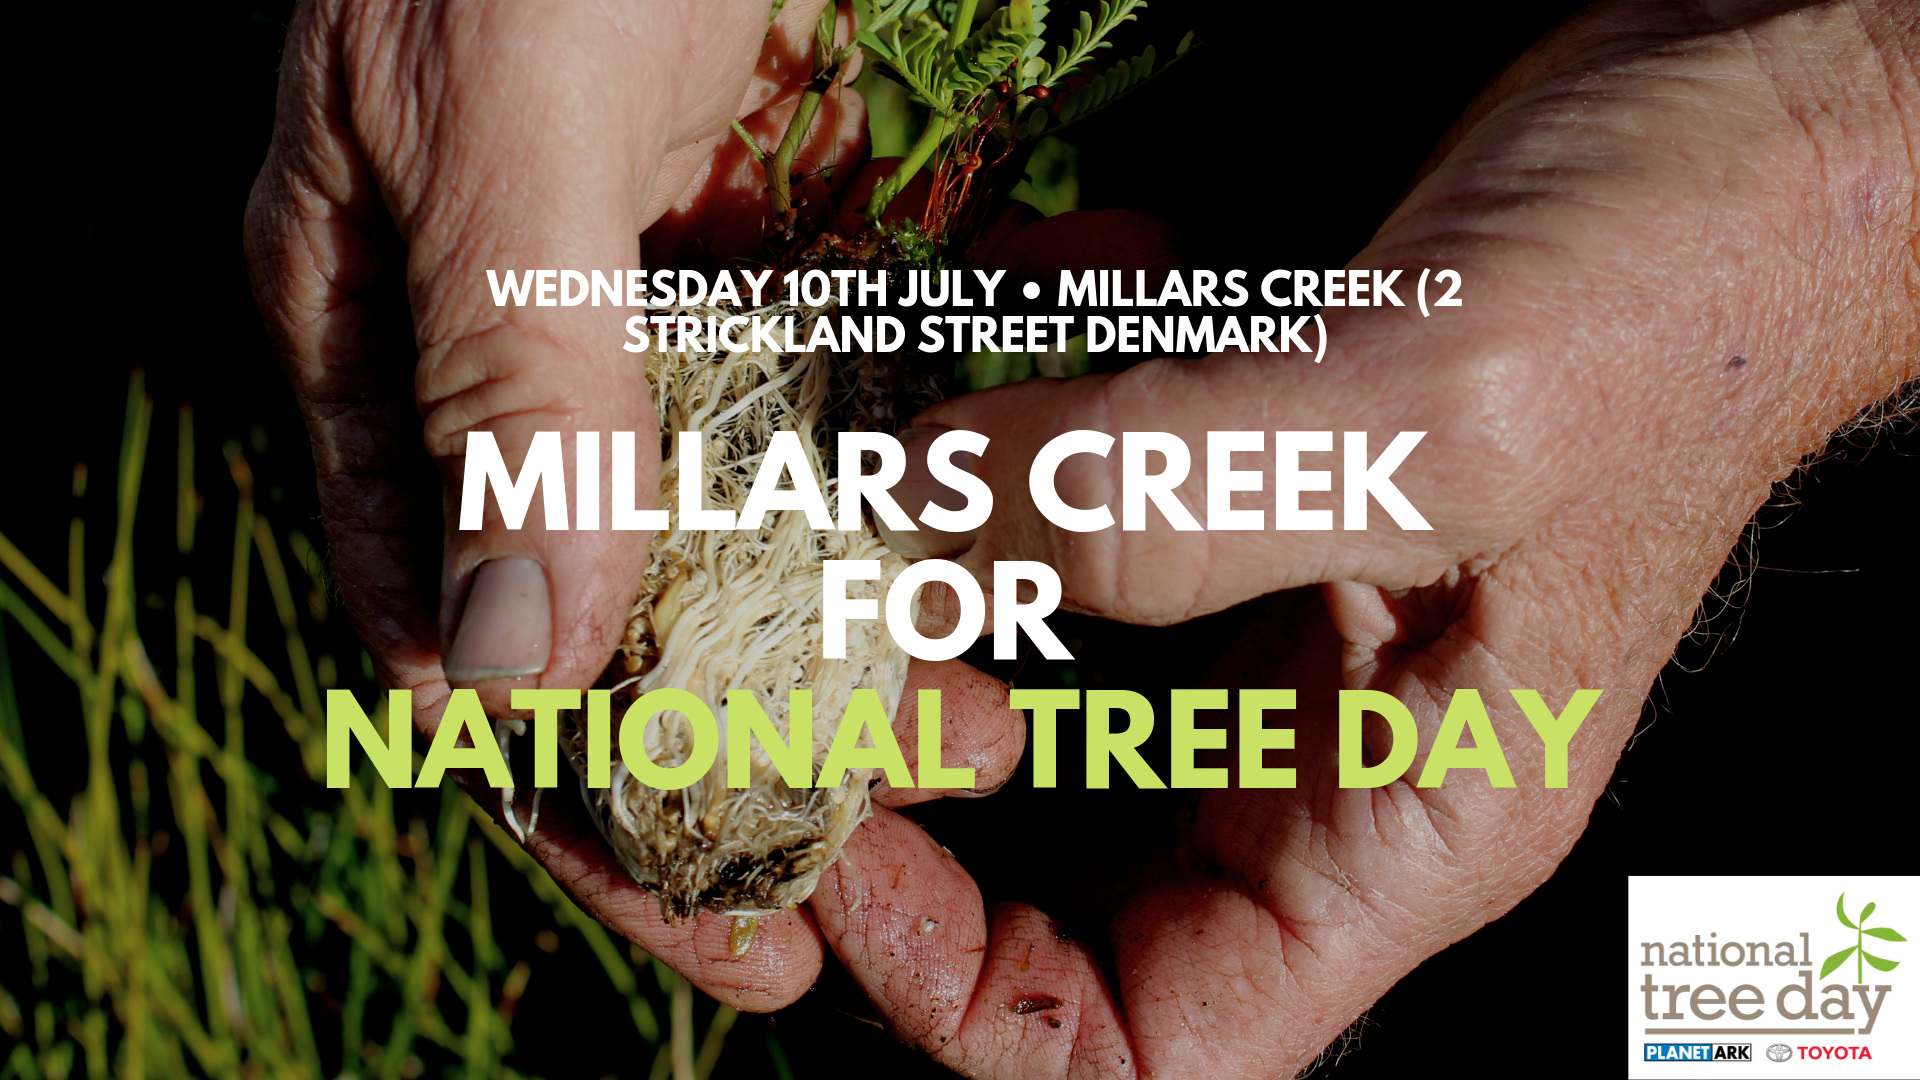 Image - Planting at Millars Creek for National Tree Day